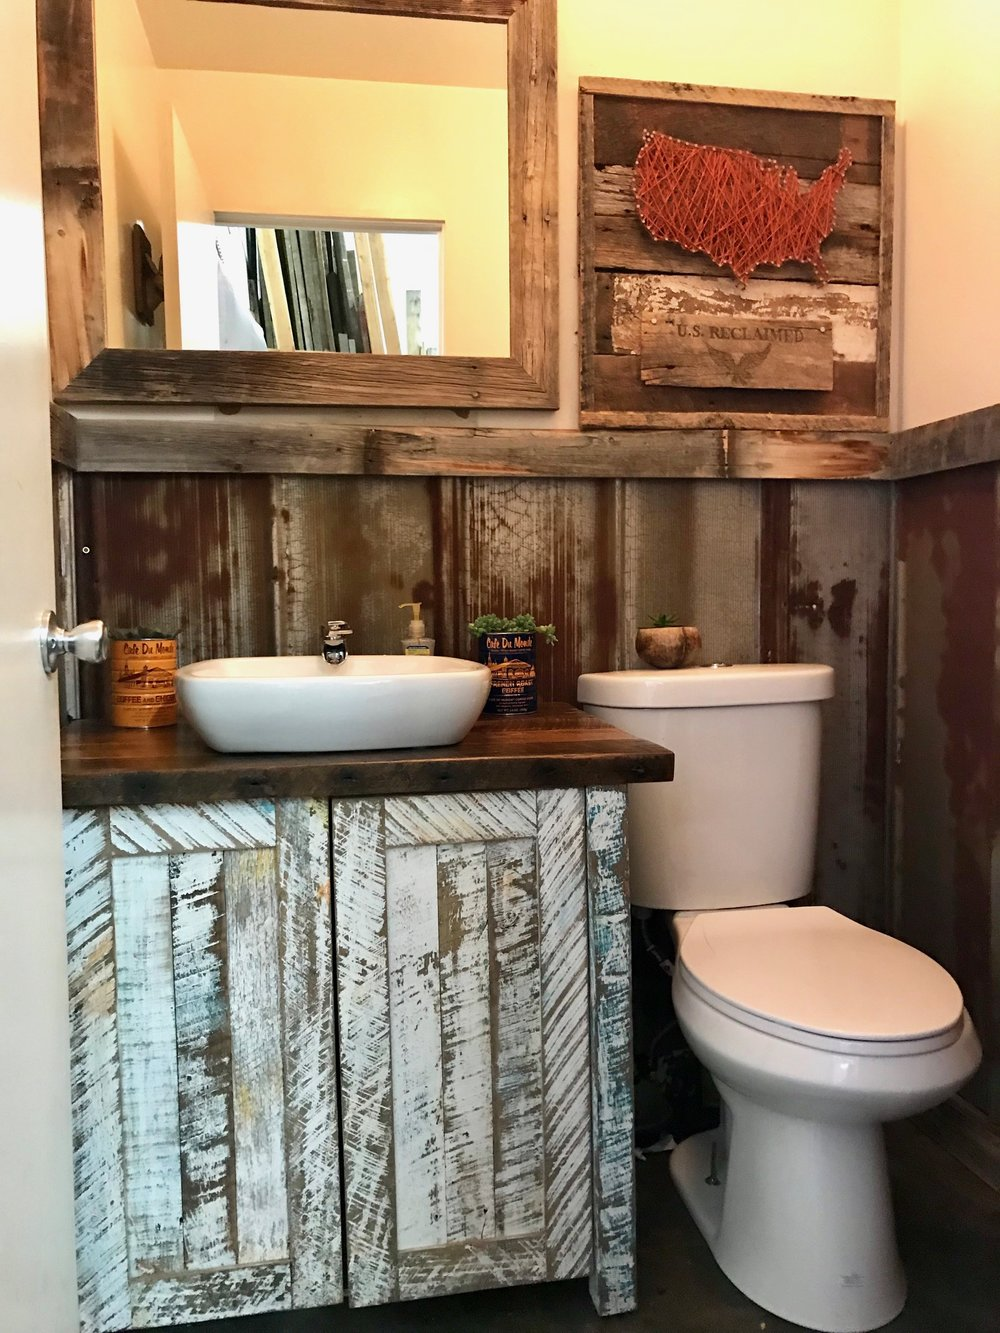 Update any restroom with reclaimed! U.S. Reclaimed, Vintage Lumber and Wood Works offers a variety of reclaimed wood to get started with your vintage projects. Reclaimed wood looks great and works great in any room: including restroom/bathrooms! Visit the store or contact us to get started with your reclaimed wood project; we look forward to working with you!